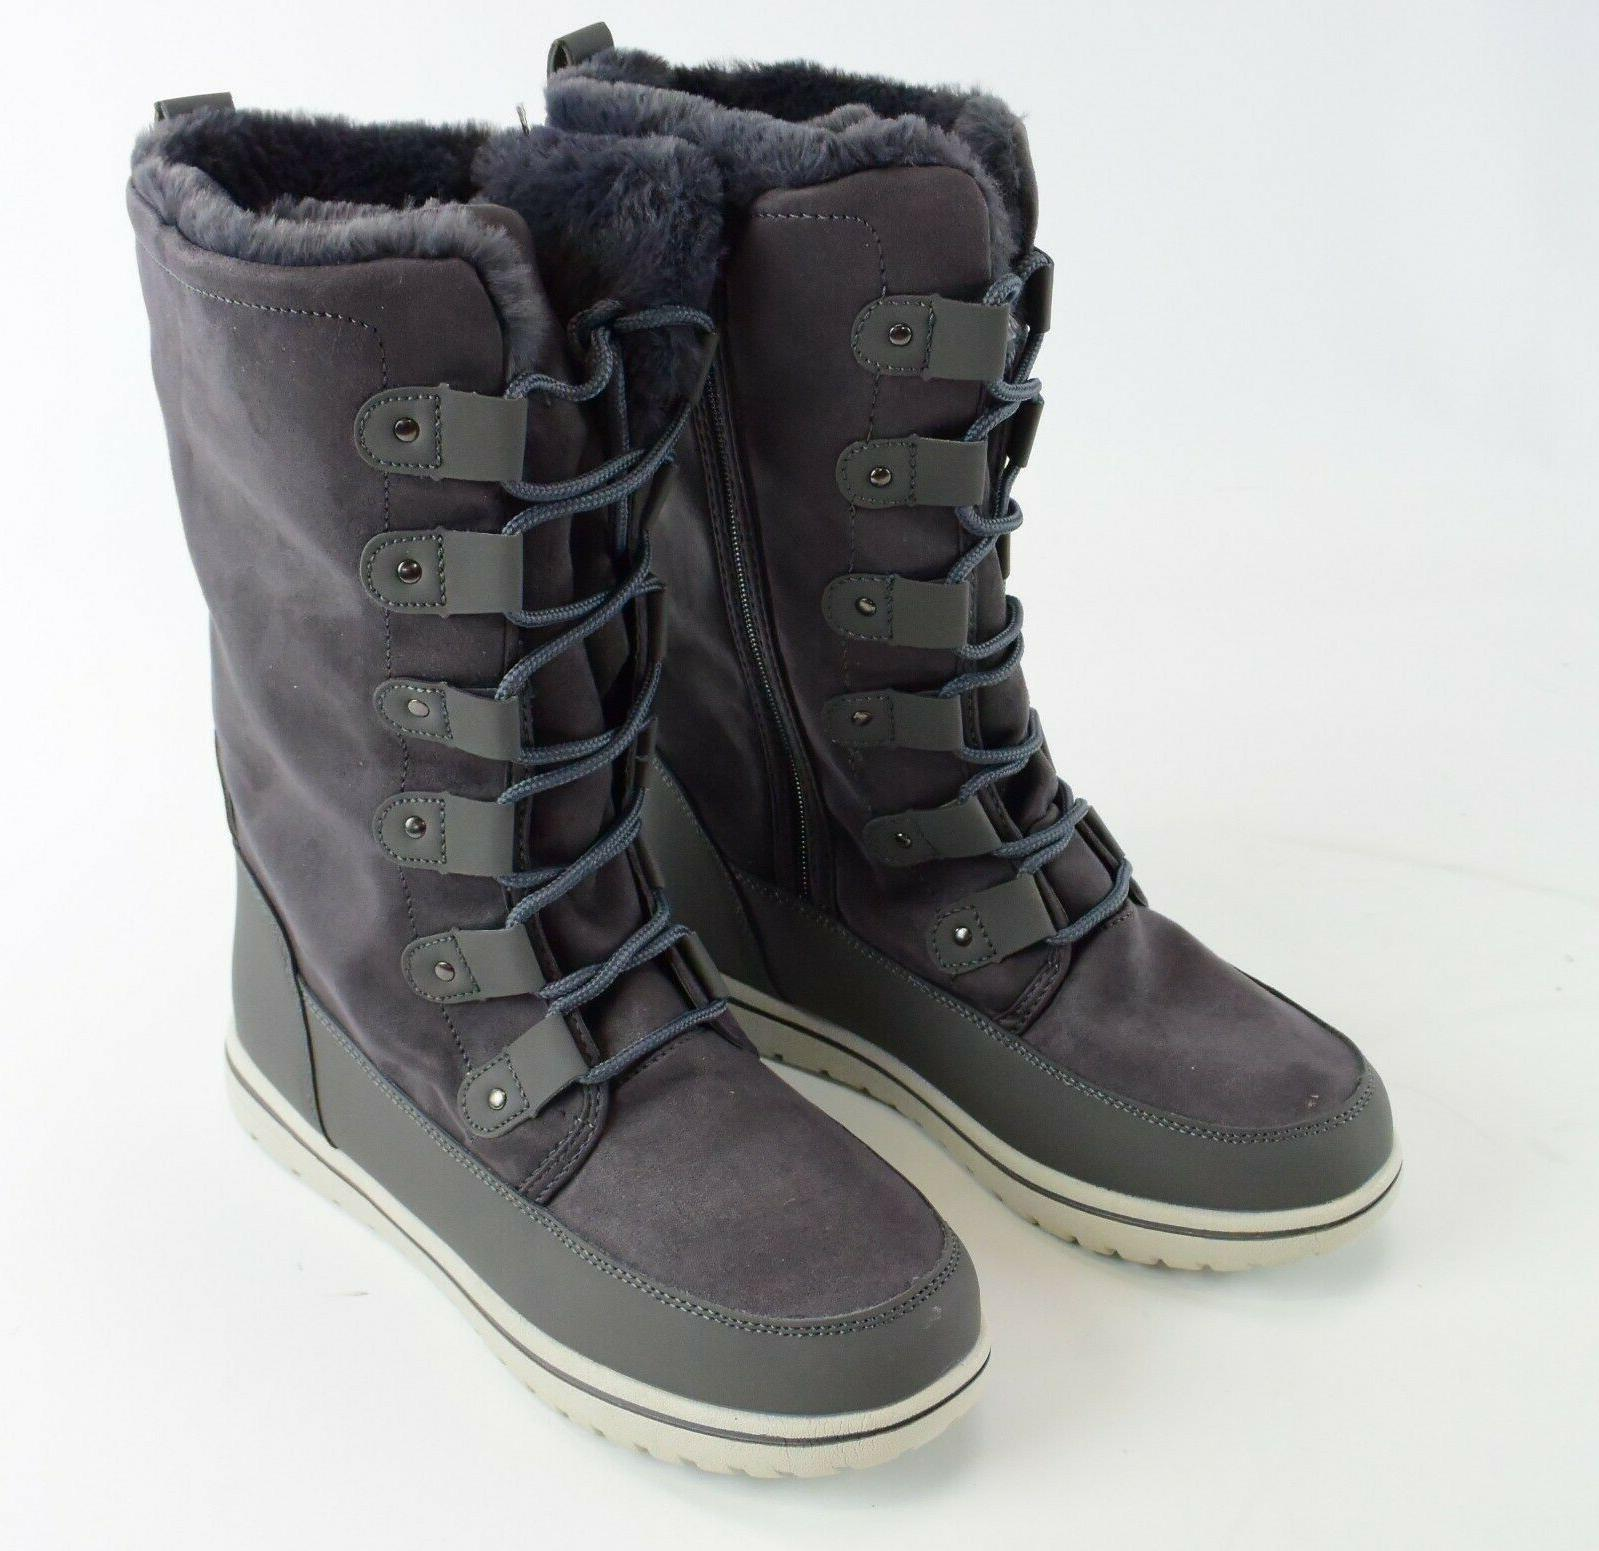 womens tall snow waterproof durable outdoor winter